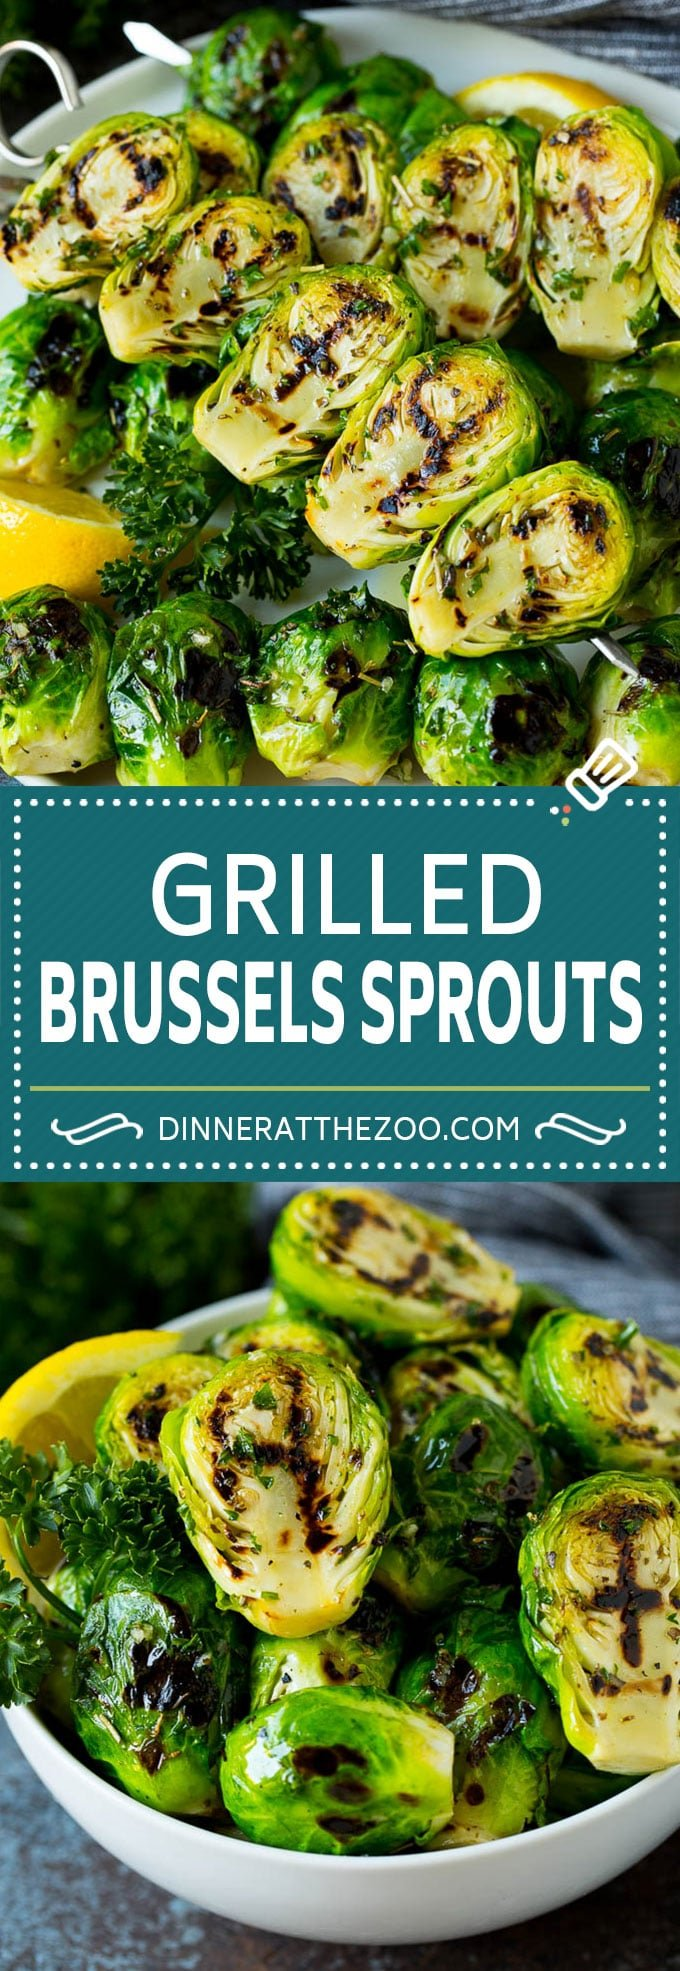 These grilled brussels sprouts are coated in olive oil, garlic and herbs, then threaded onto skewers and cooked until caramelized.